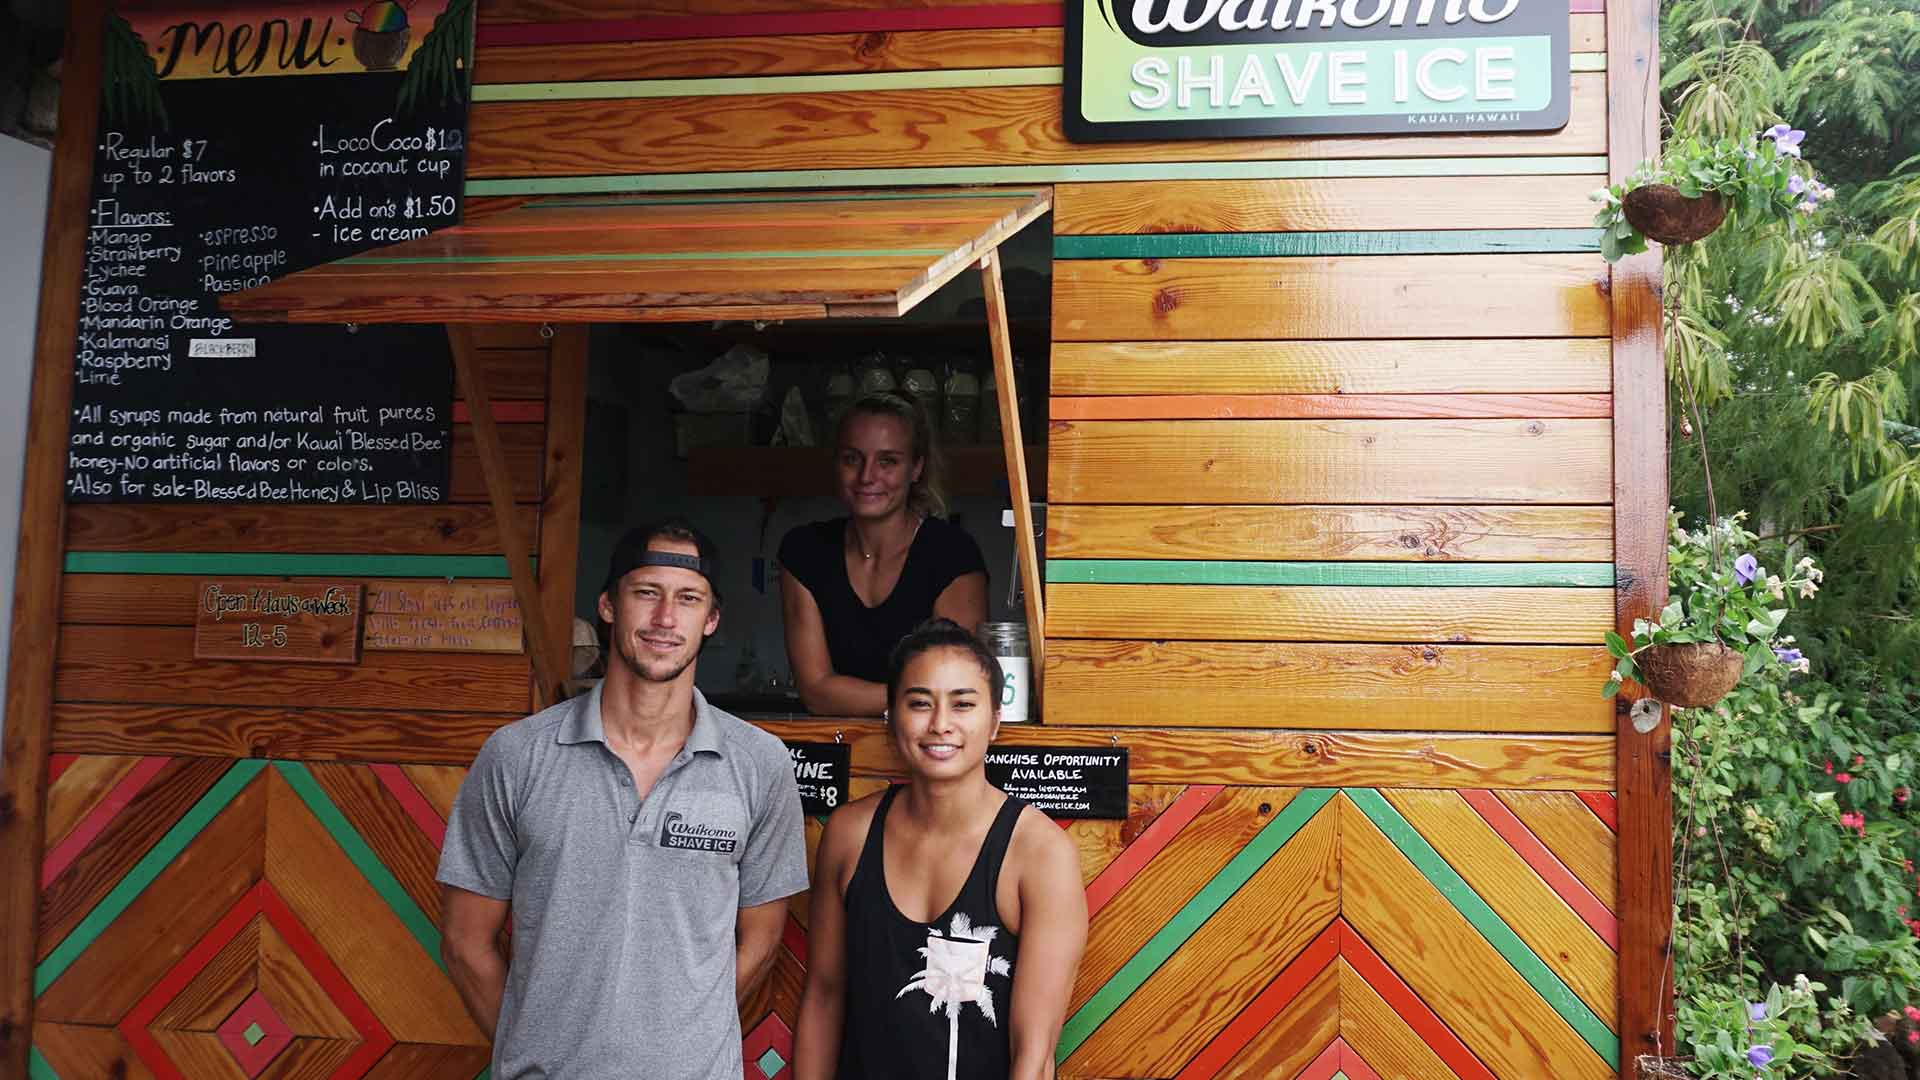 Waikomo Shave Ice Shave Ice, All Natural Shave Ice and Desserts